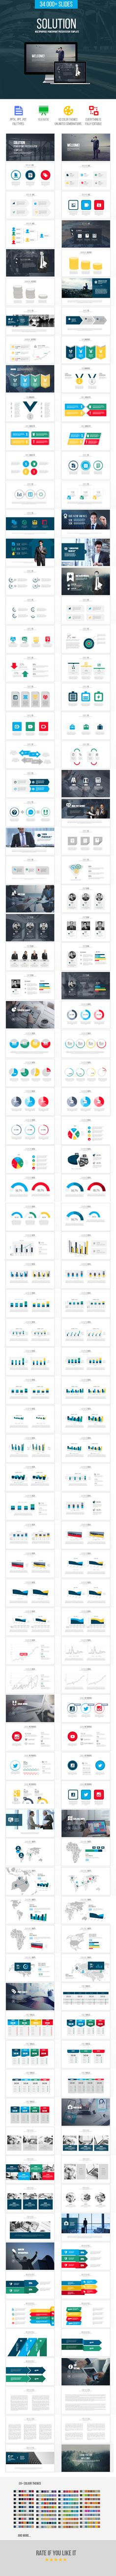 Solution Powerpoint Presentation Template. Download here: https://graphicriver.net/item/solution-powerpoint-presentation-template/17457502?ref=ksioks